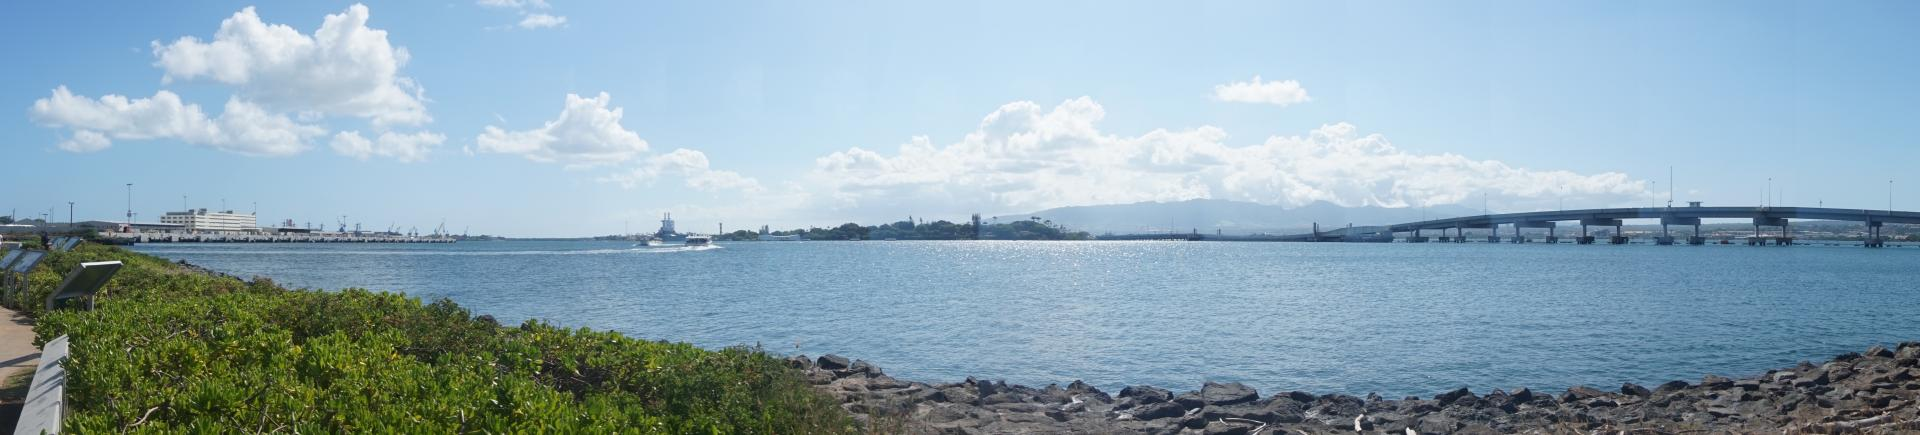 Pearl Harbor and views of the SS Missouri - June 2017